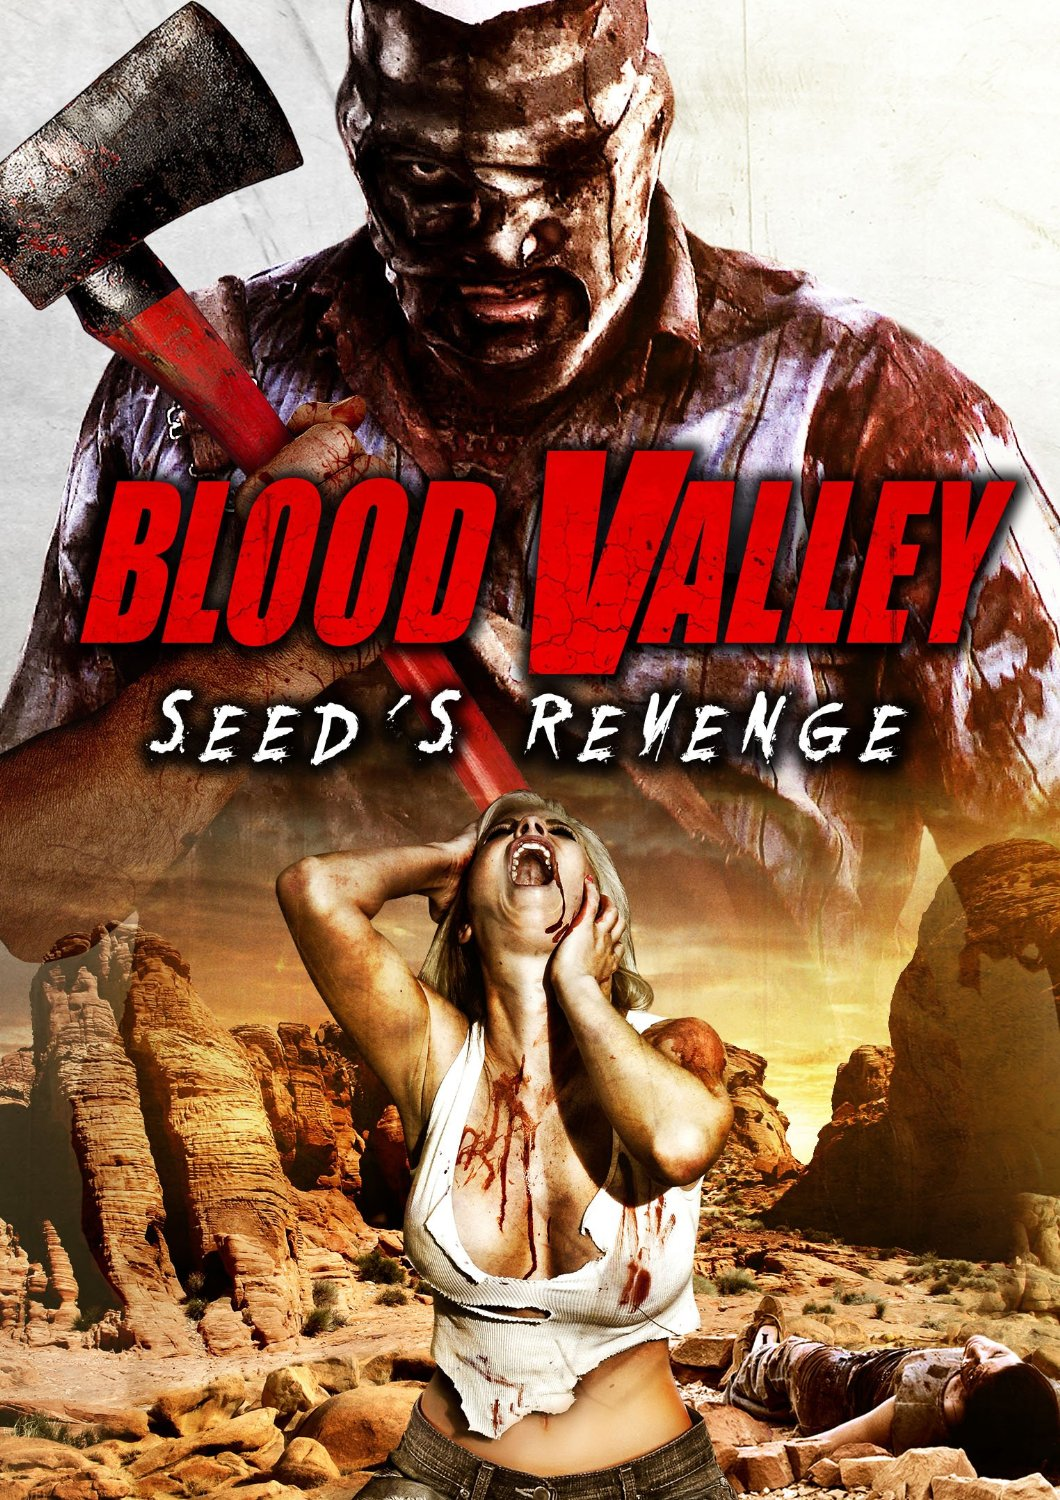 blood valley seeds revenge full movie download in hindi